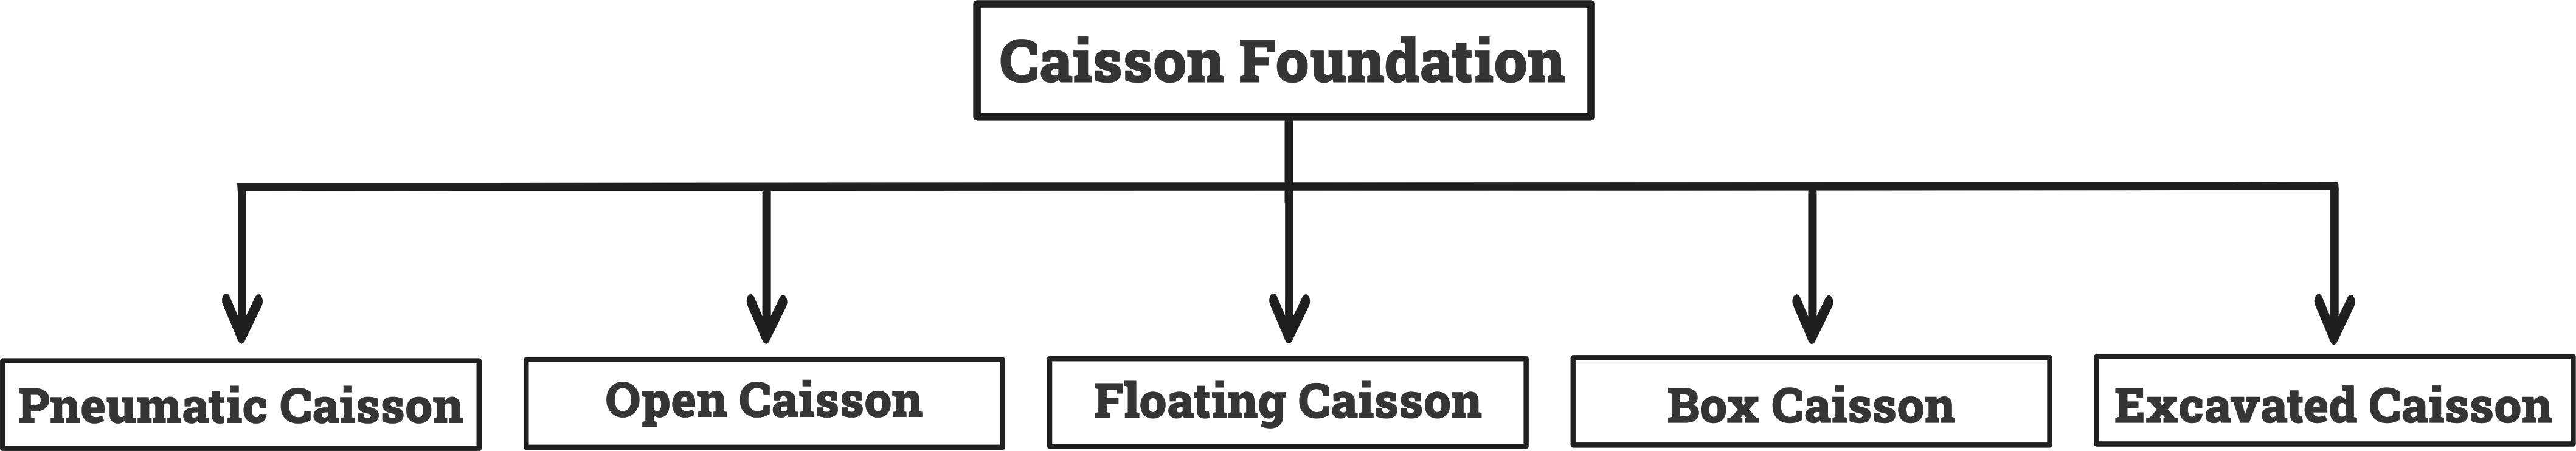 TYPES OF CAISSONS